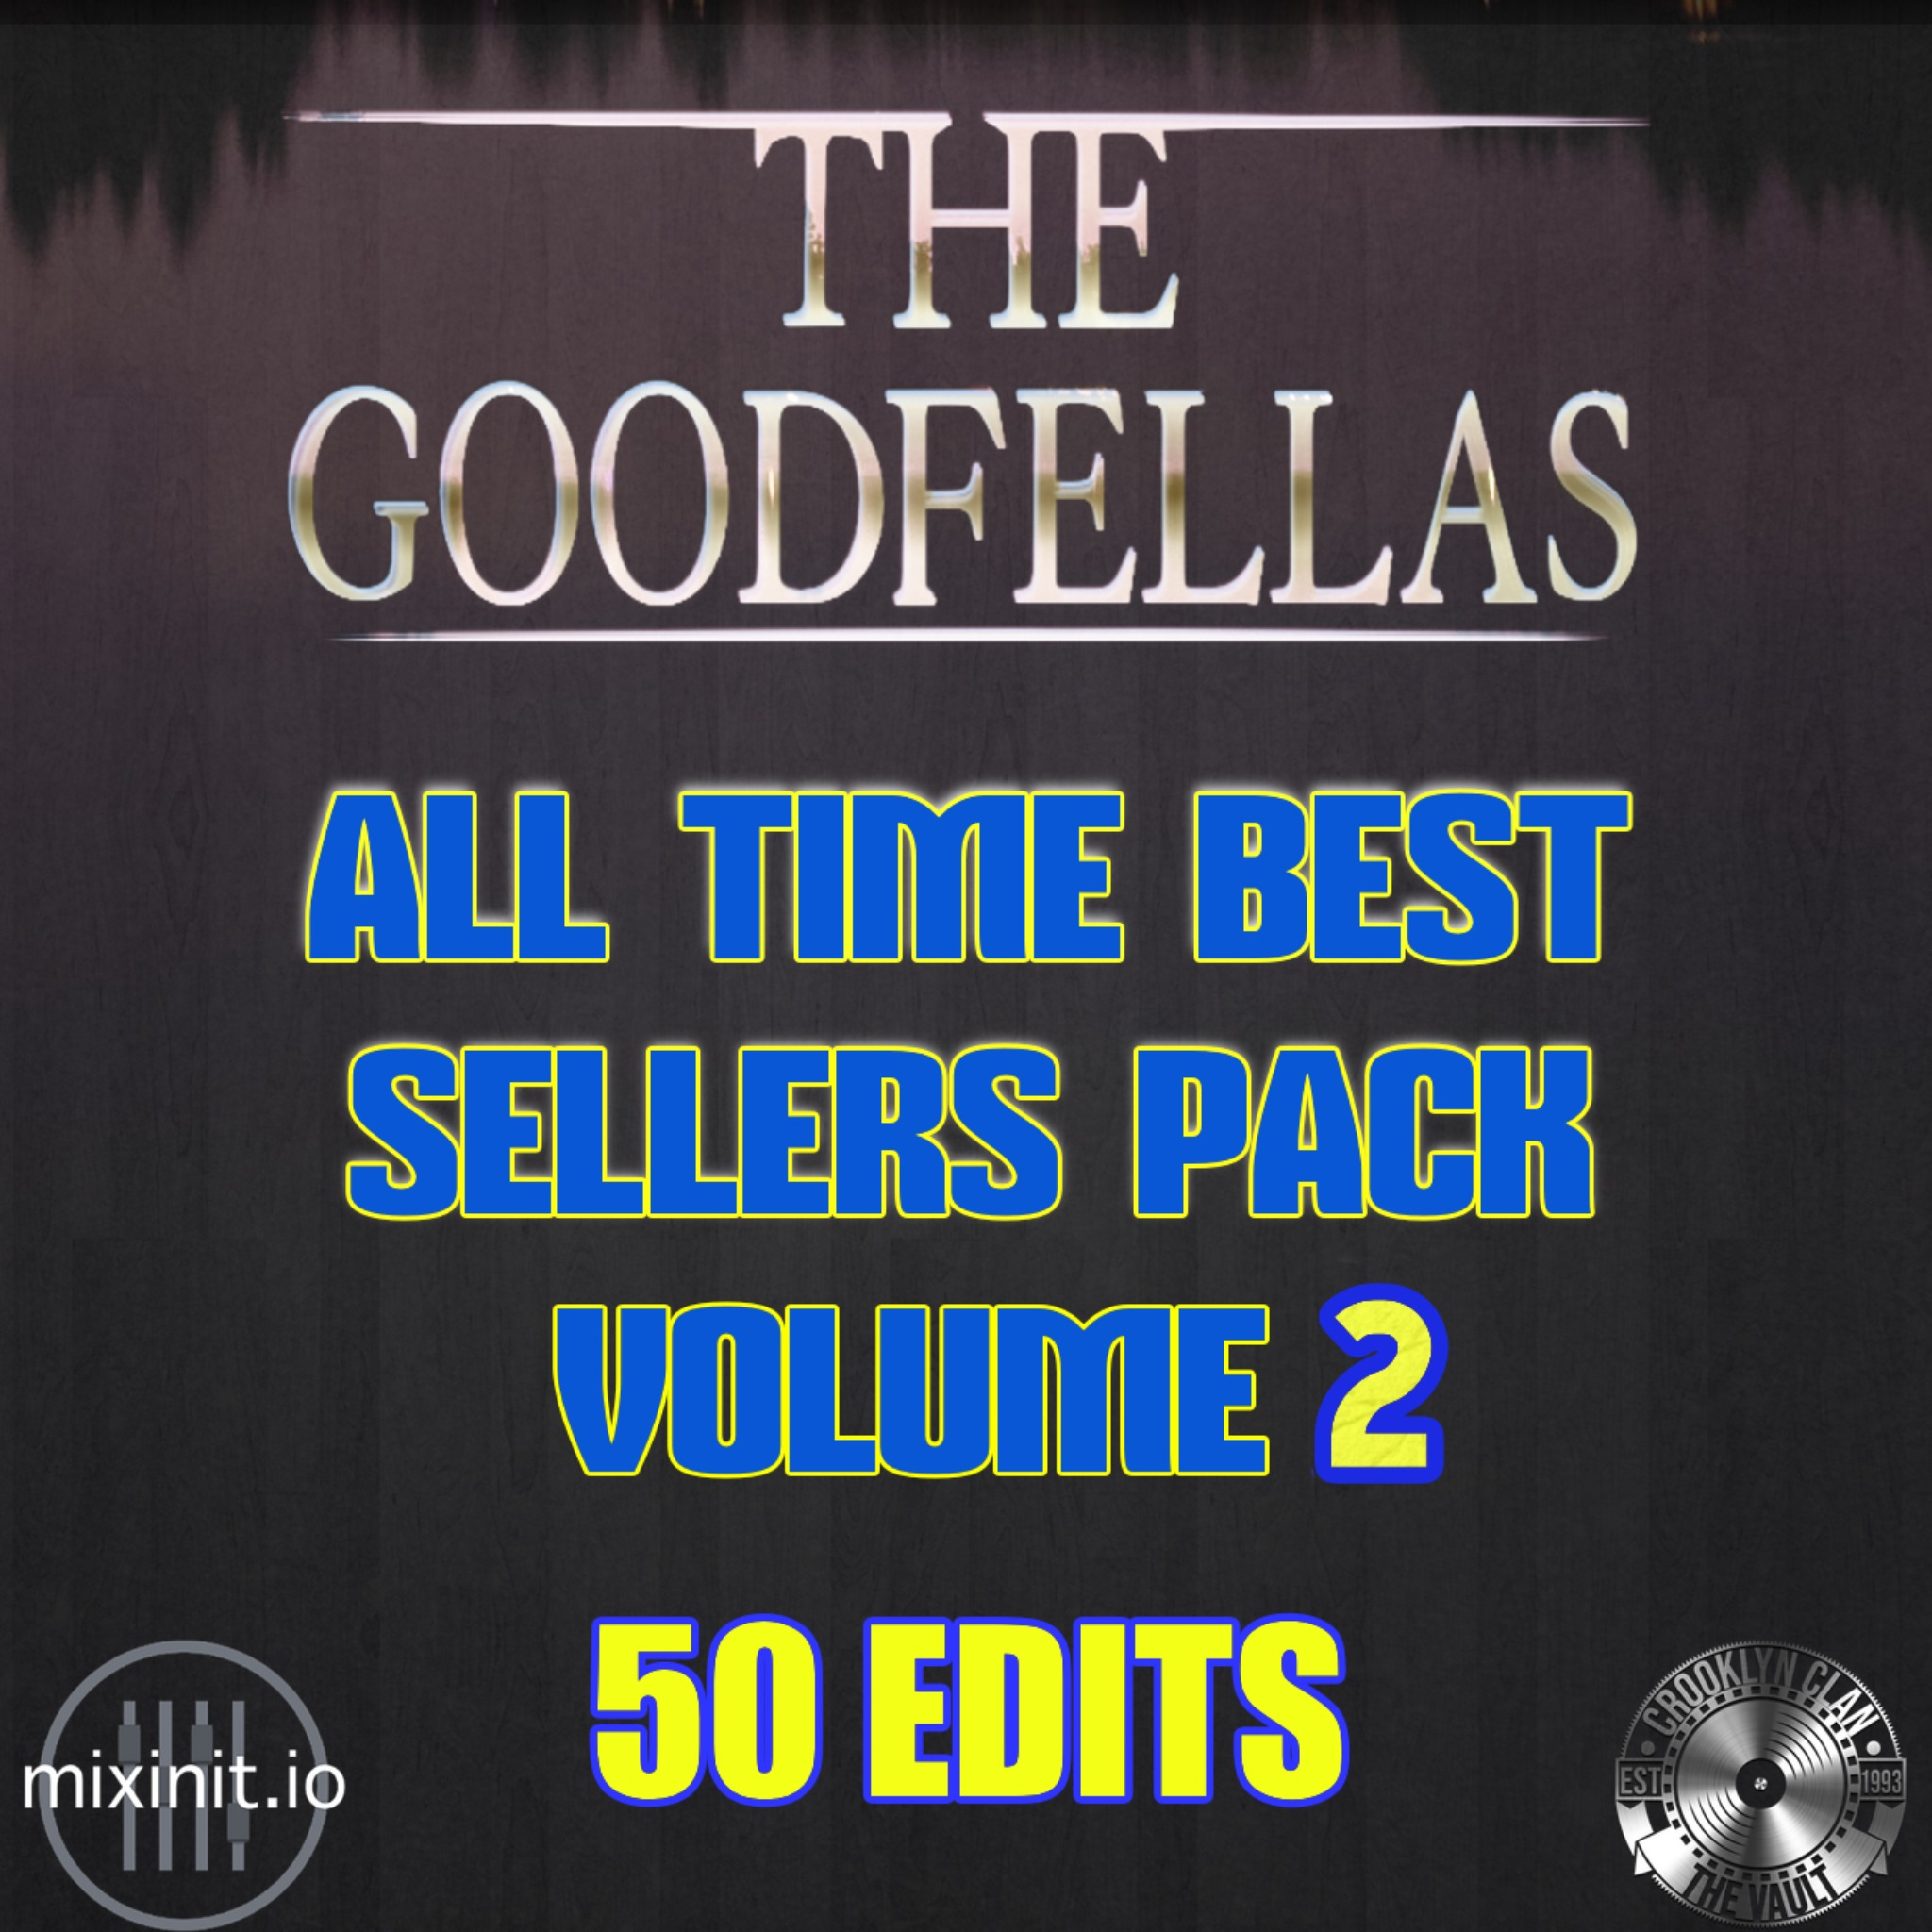 The Goodfellas - All-Time Best Sellers Vol. 2